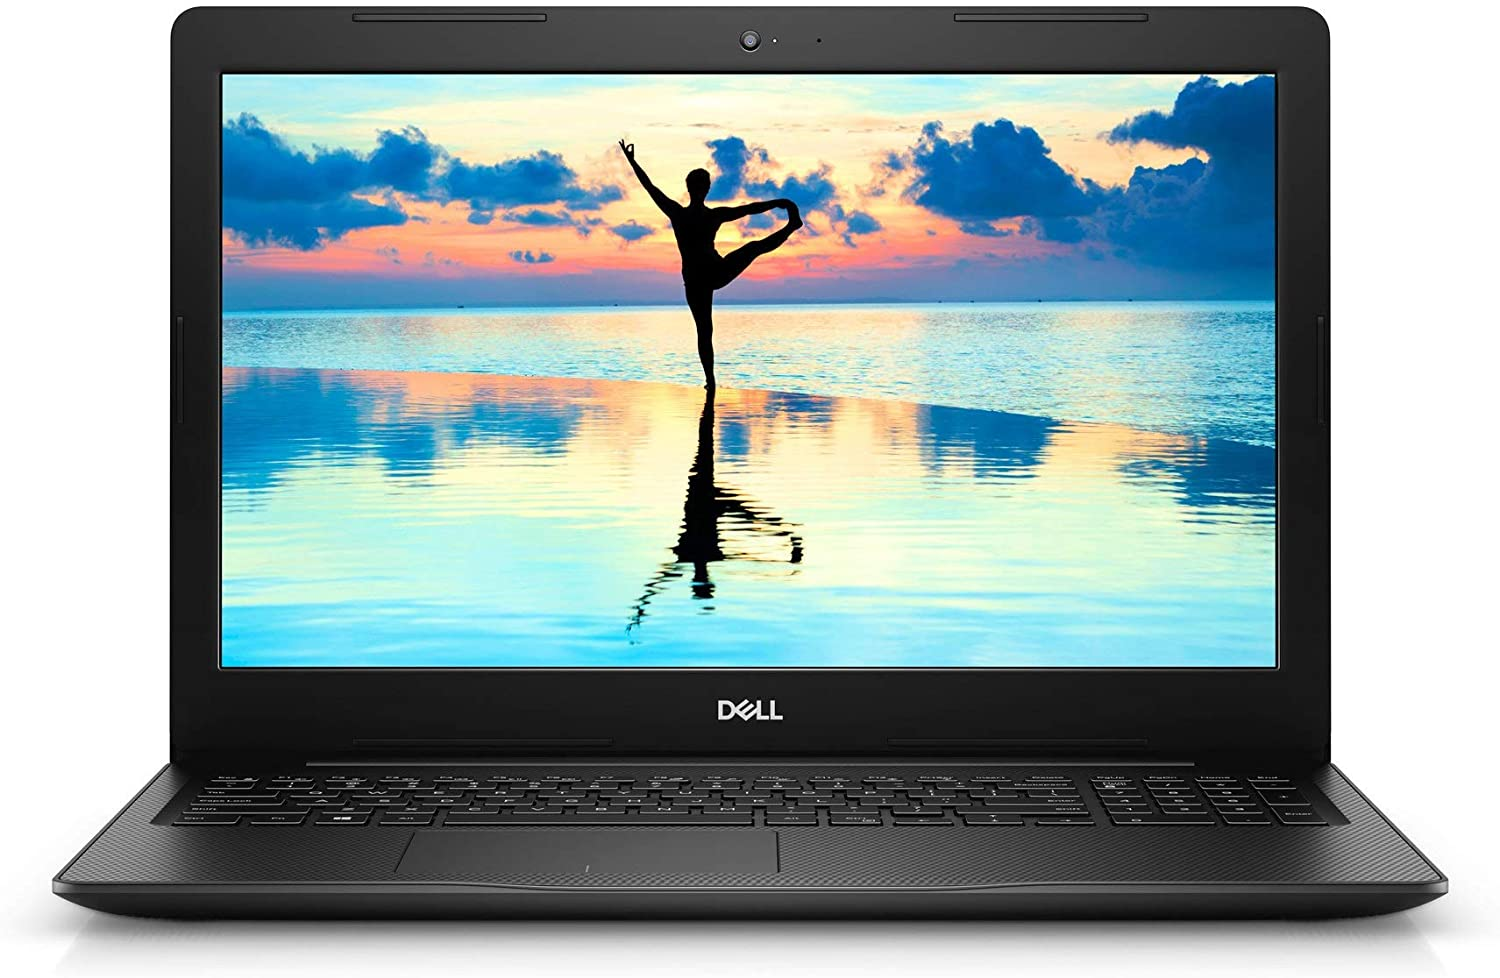 2020 Newest Dell Inspiron 15 3000 Series Laptop, 15.6